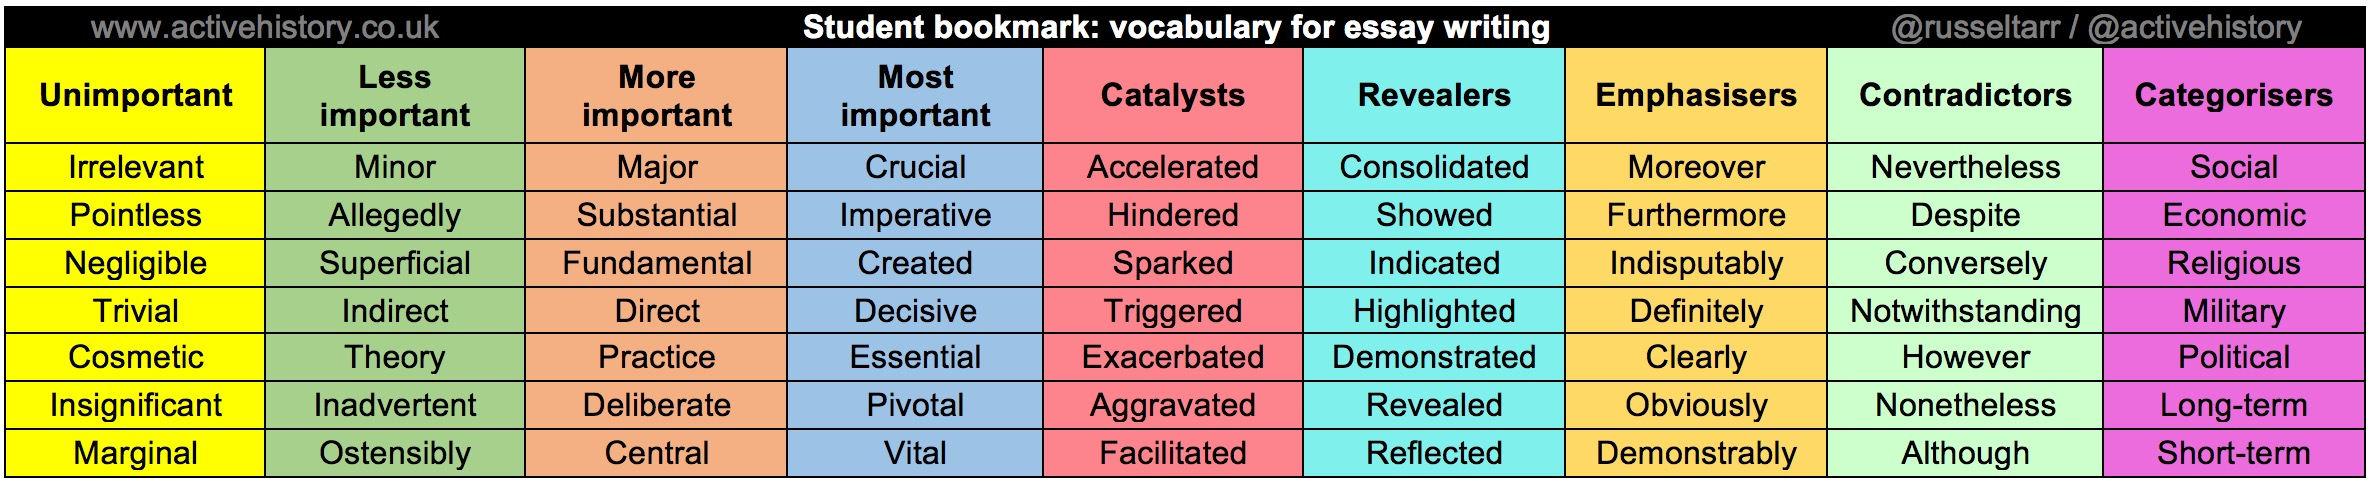 student bookmark key vocabulary for essay writing activehistory student bookmark vocabulary for essay writing